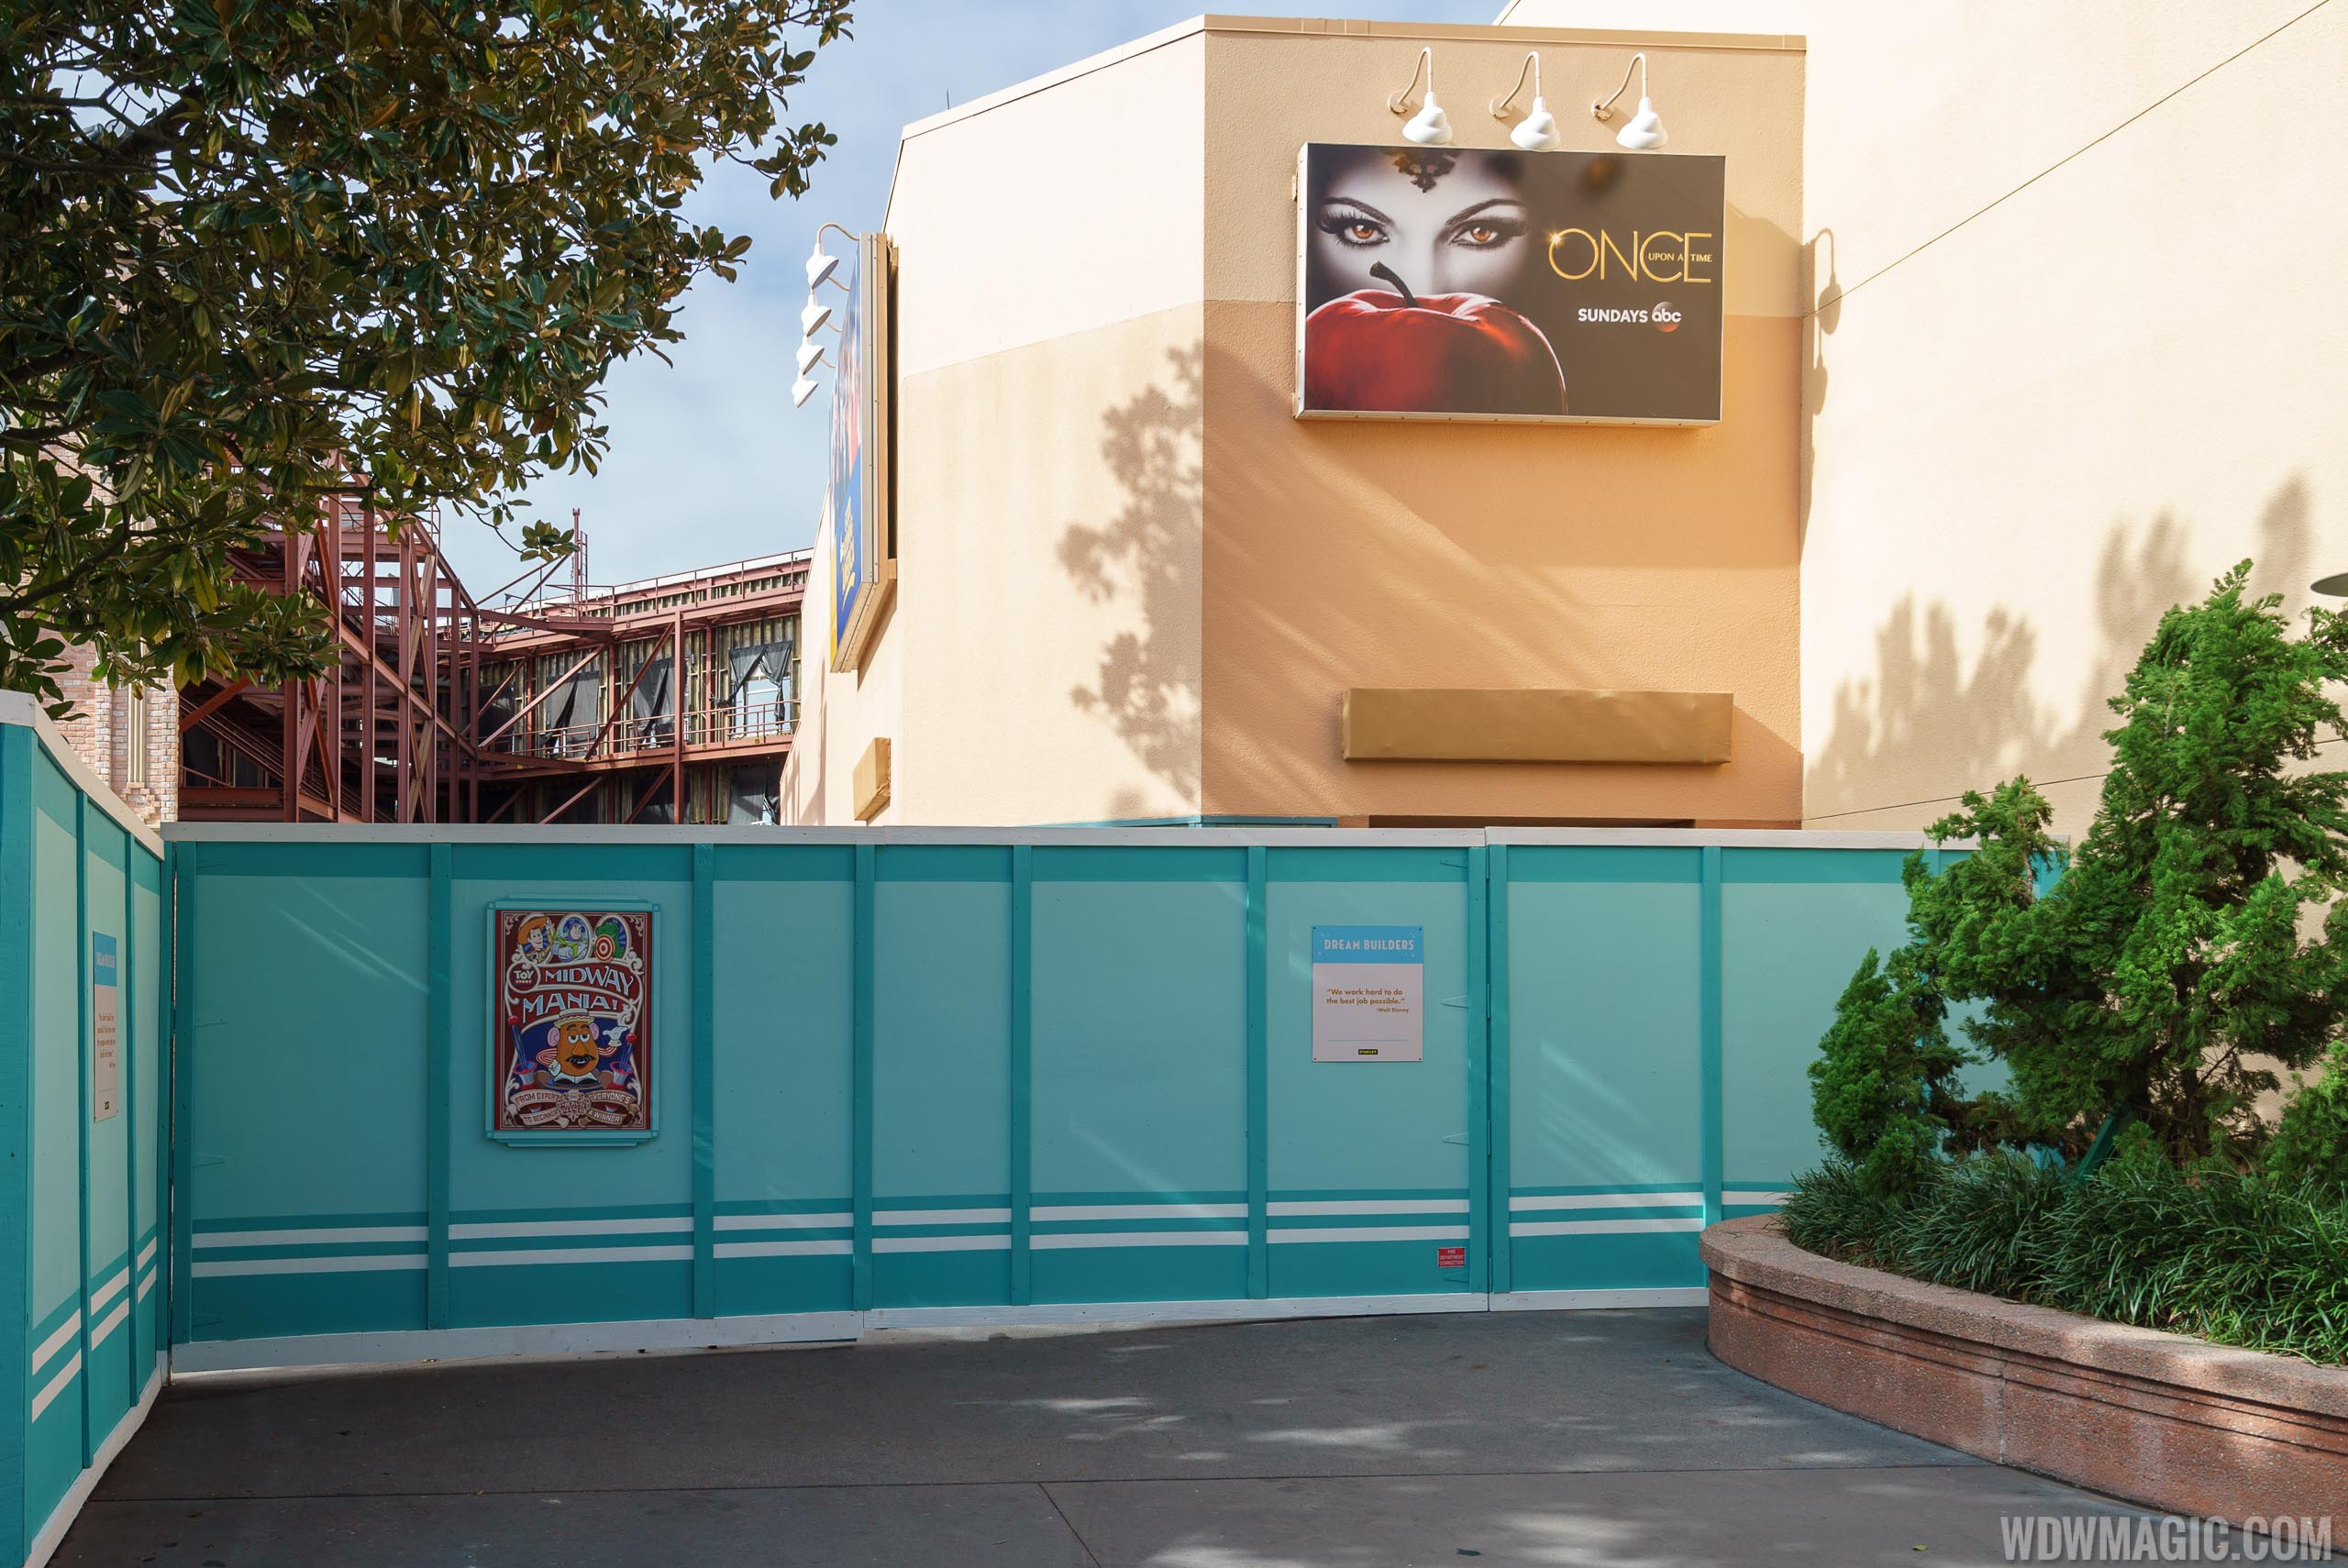 Backlot cleared ahead of Star Wars and Toy Story Lands